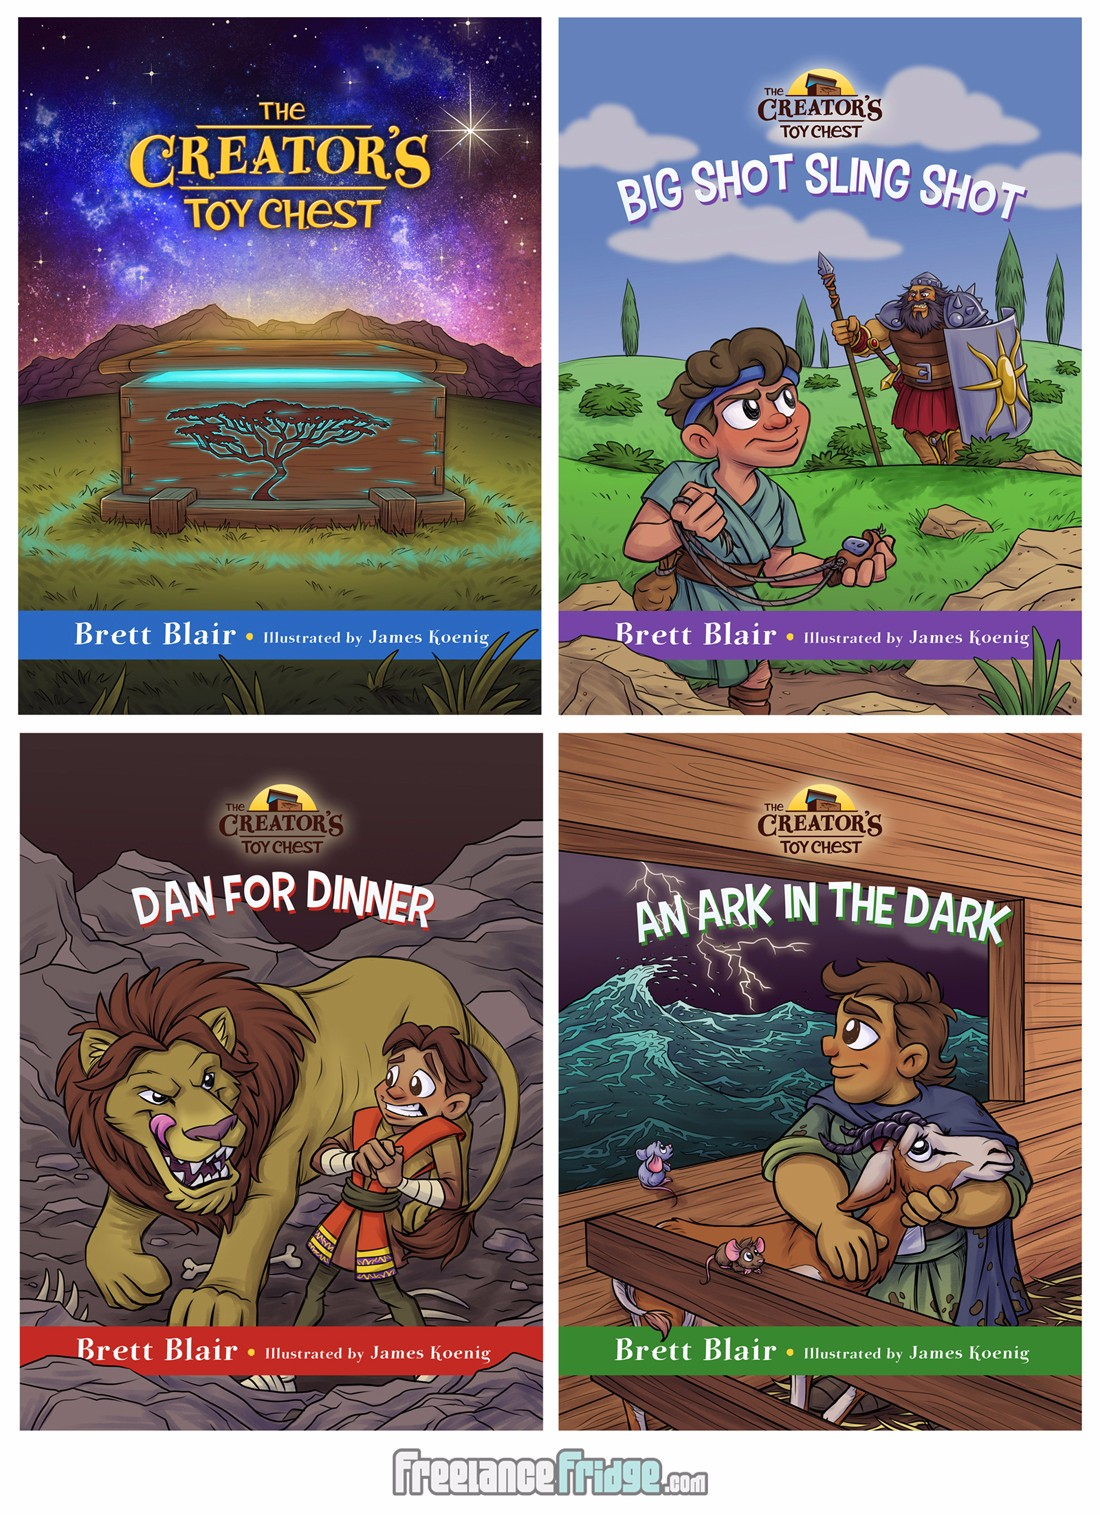 The Creator's Toy Chest All 4 Christian Bible Children's Books Series Covers